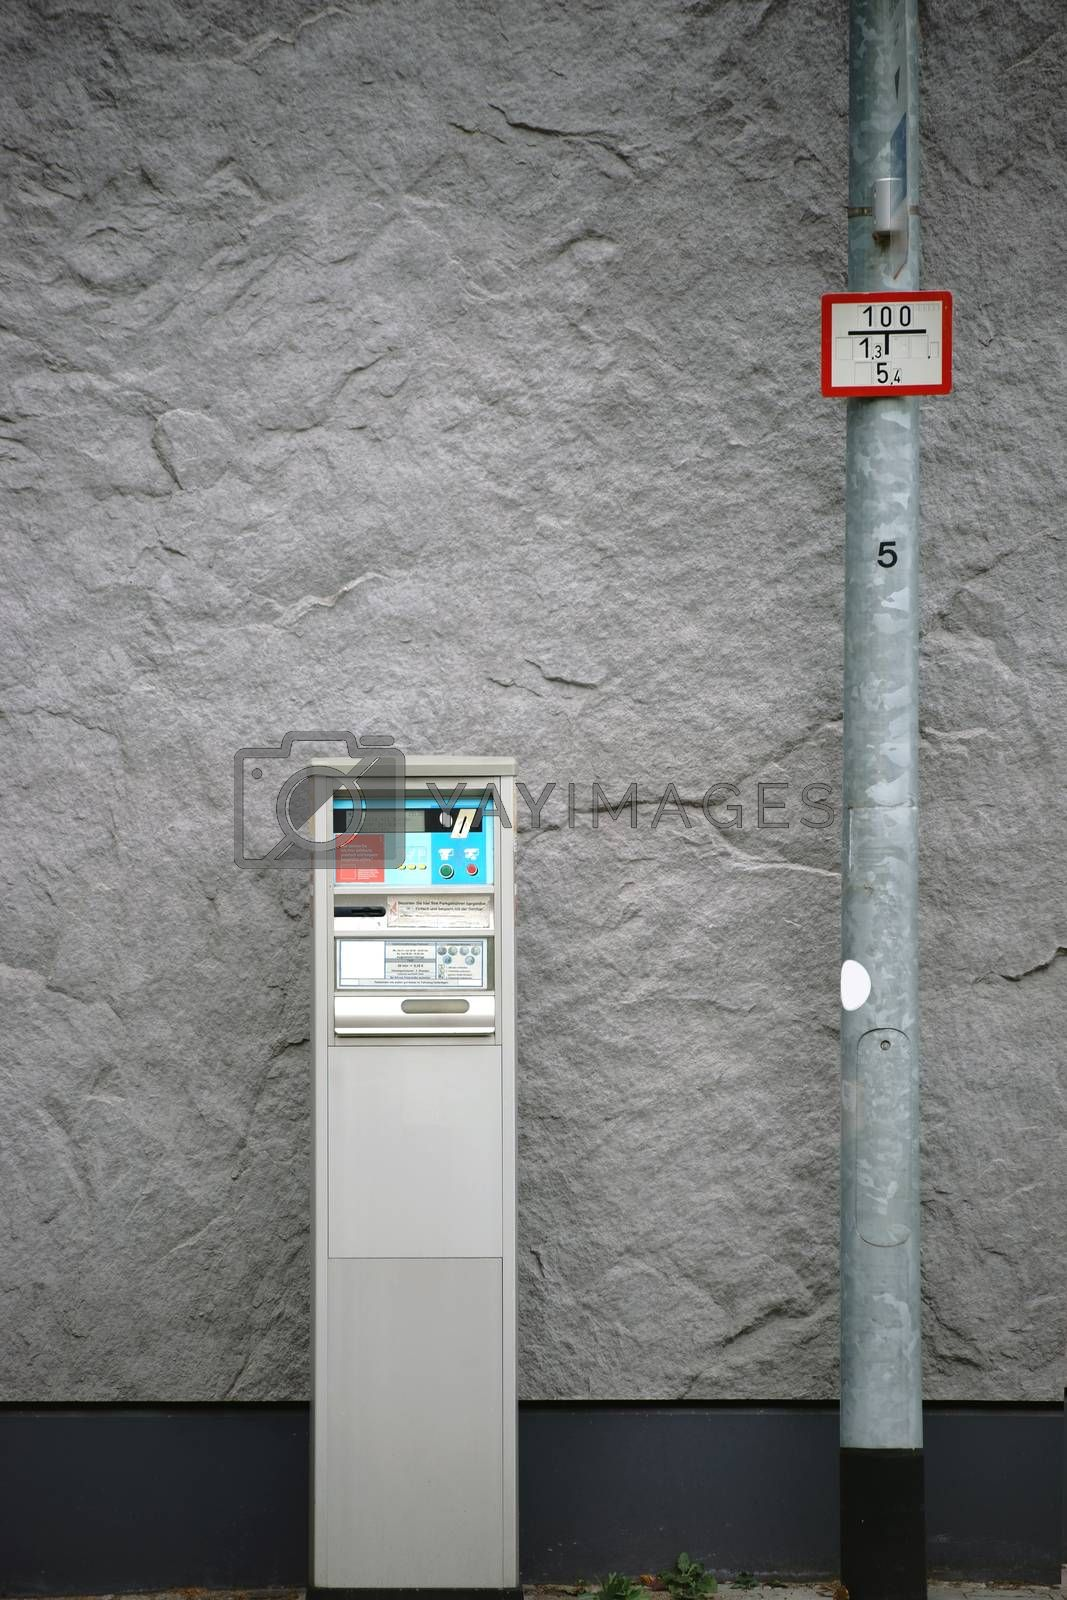 An old ticket machine or parking meter is facing a striking wall.